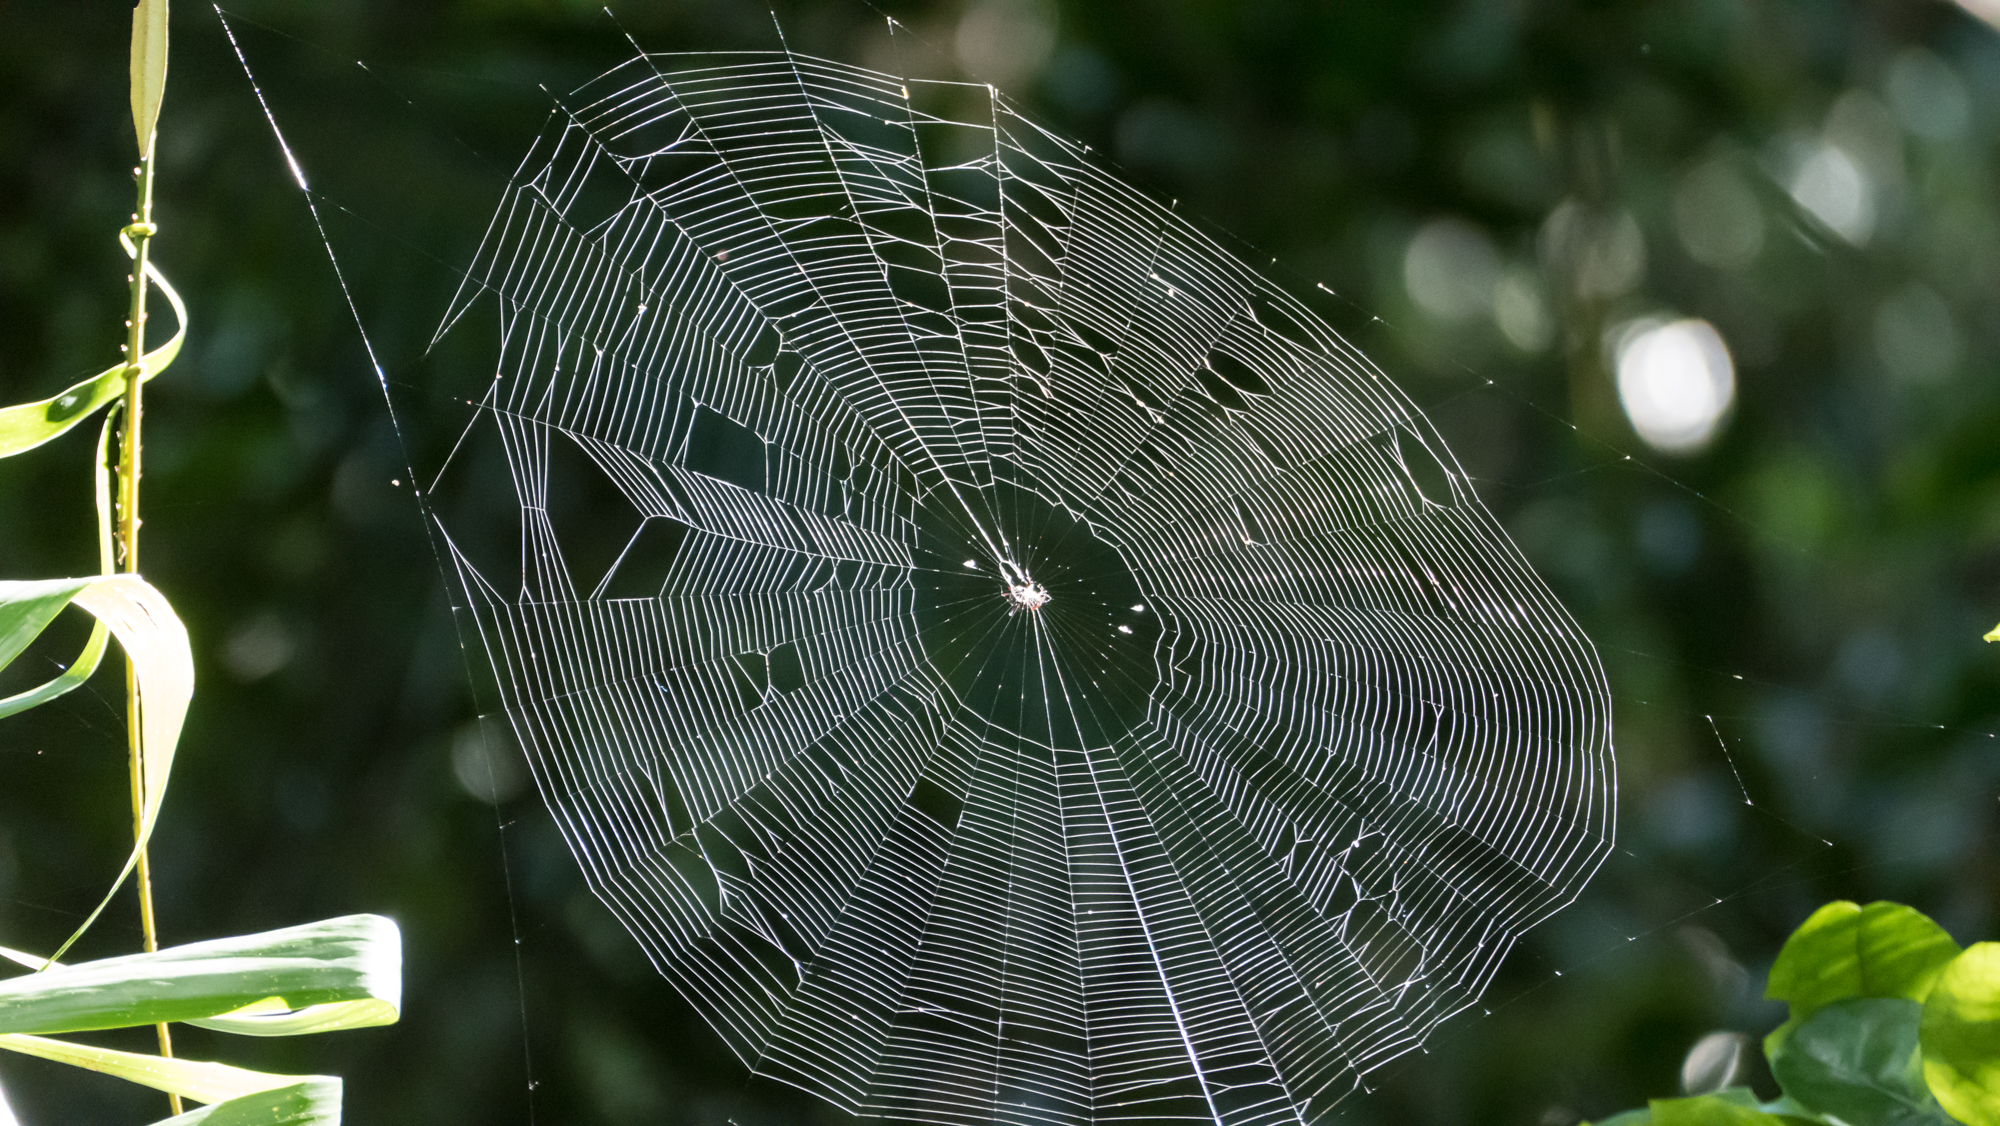 spider web high in the rainforest author yin tom